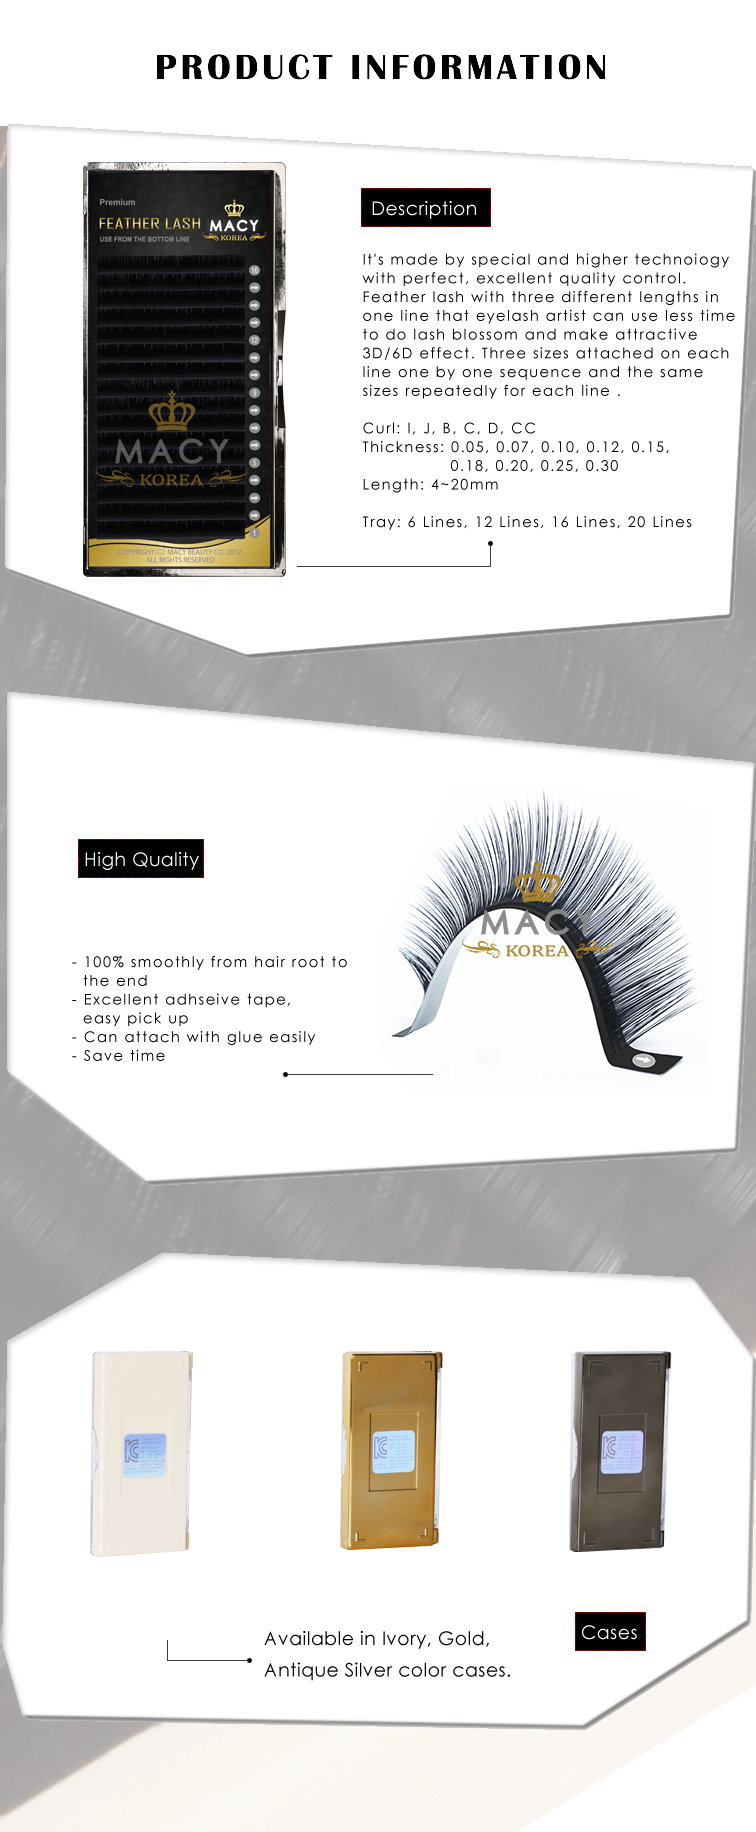 M acy Super Gold Feather Lash